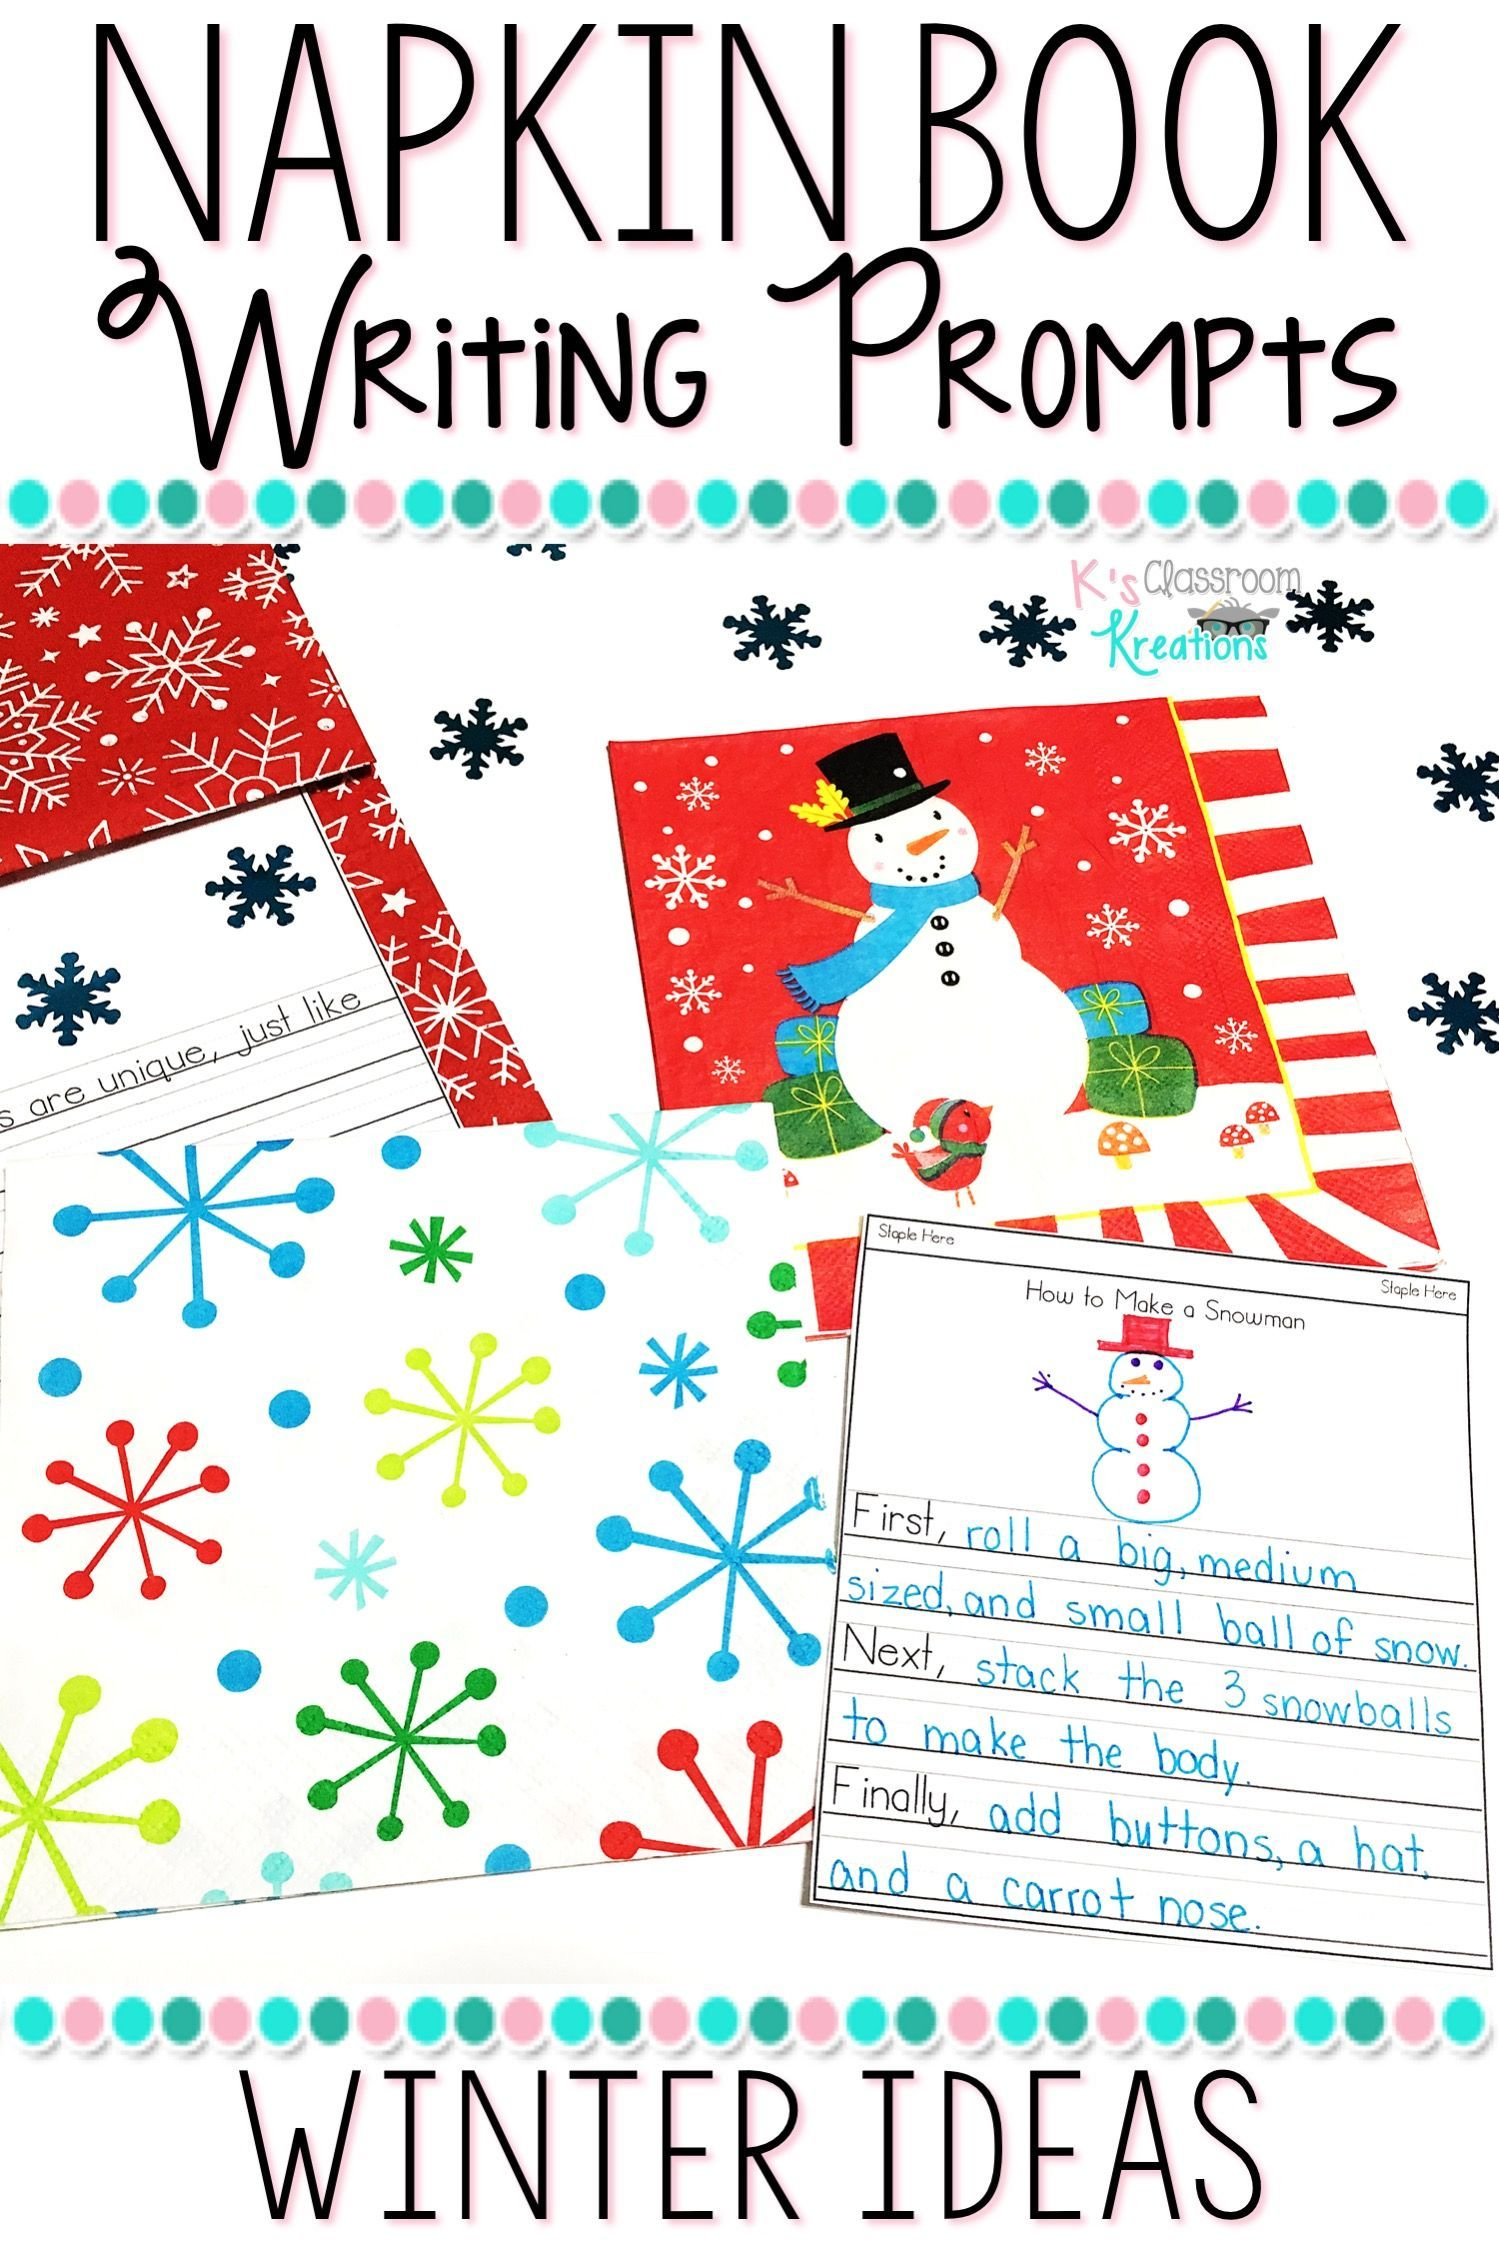 Winter Writing Prompts Writing prompts, Creative writing